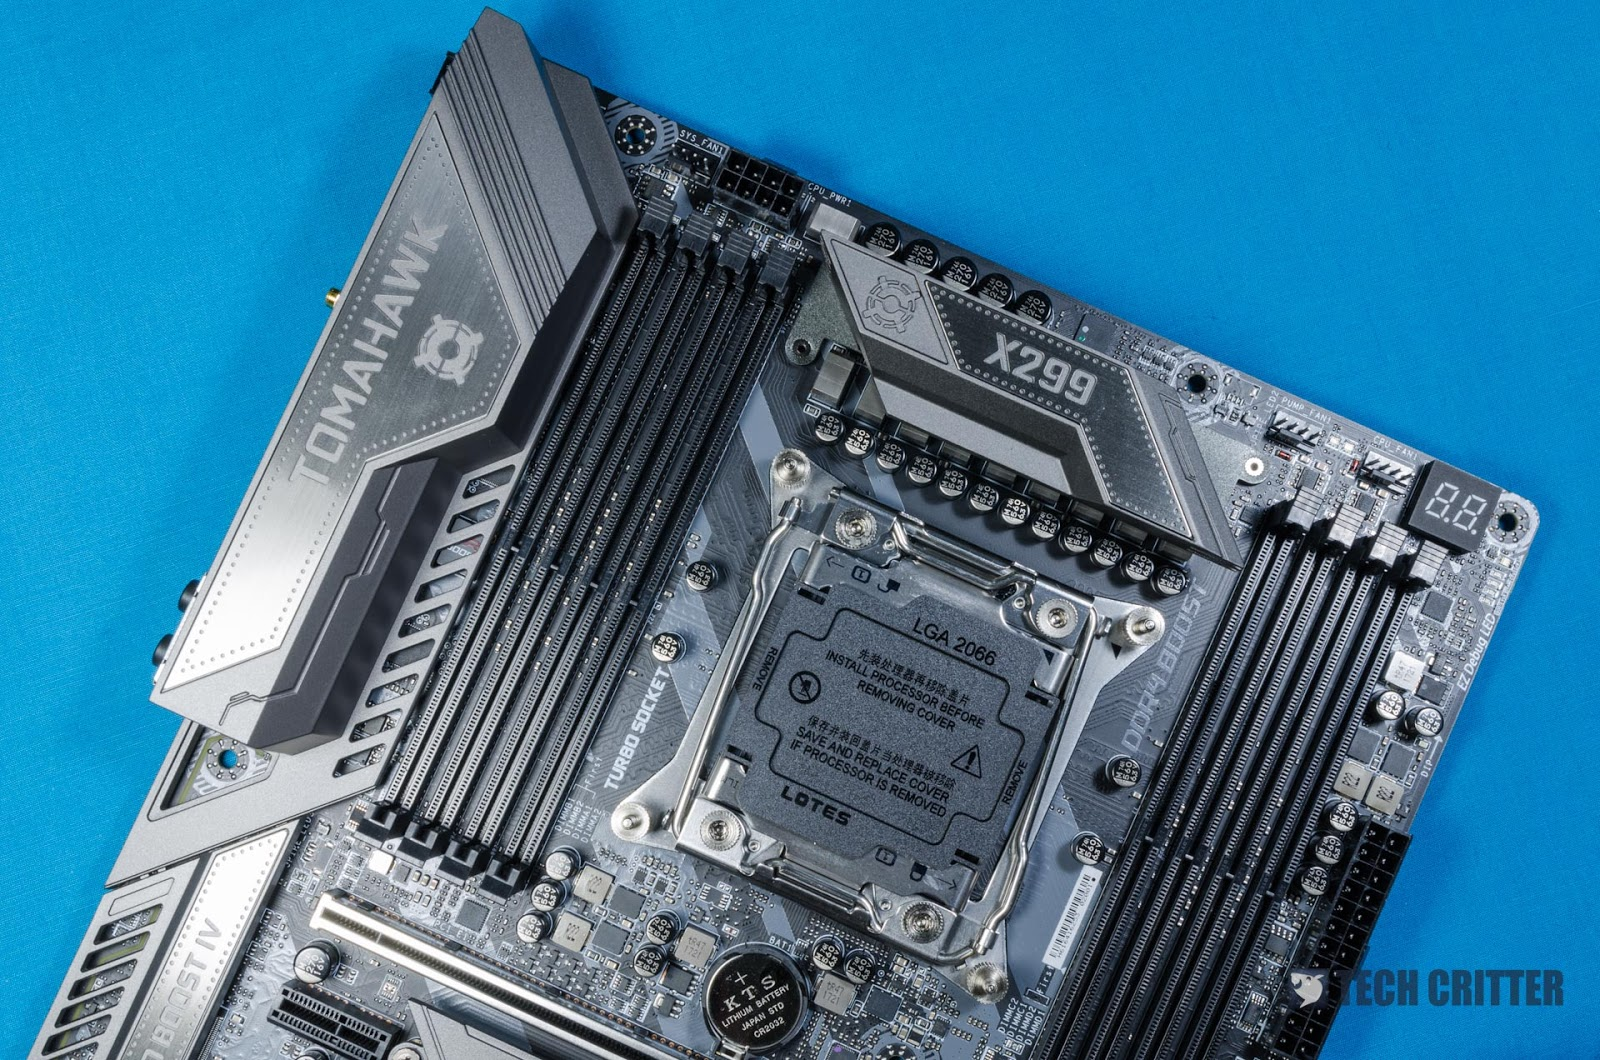 Unboxing & Overview: MSI X299 Tomahawk AC